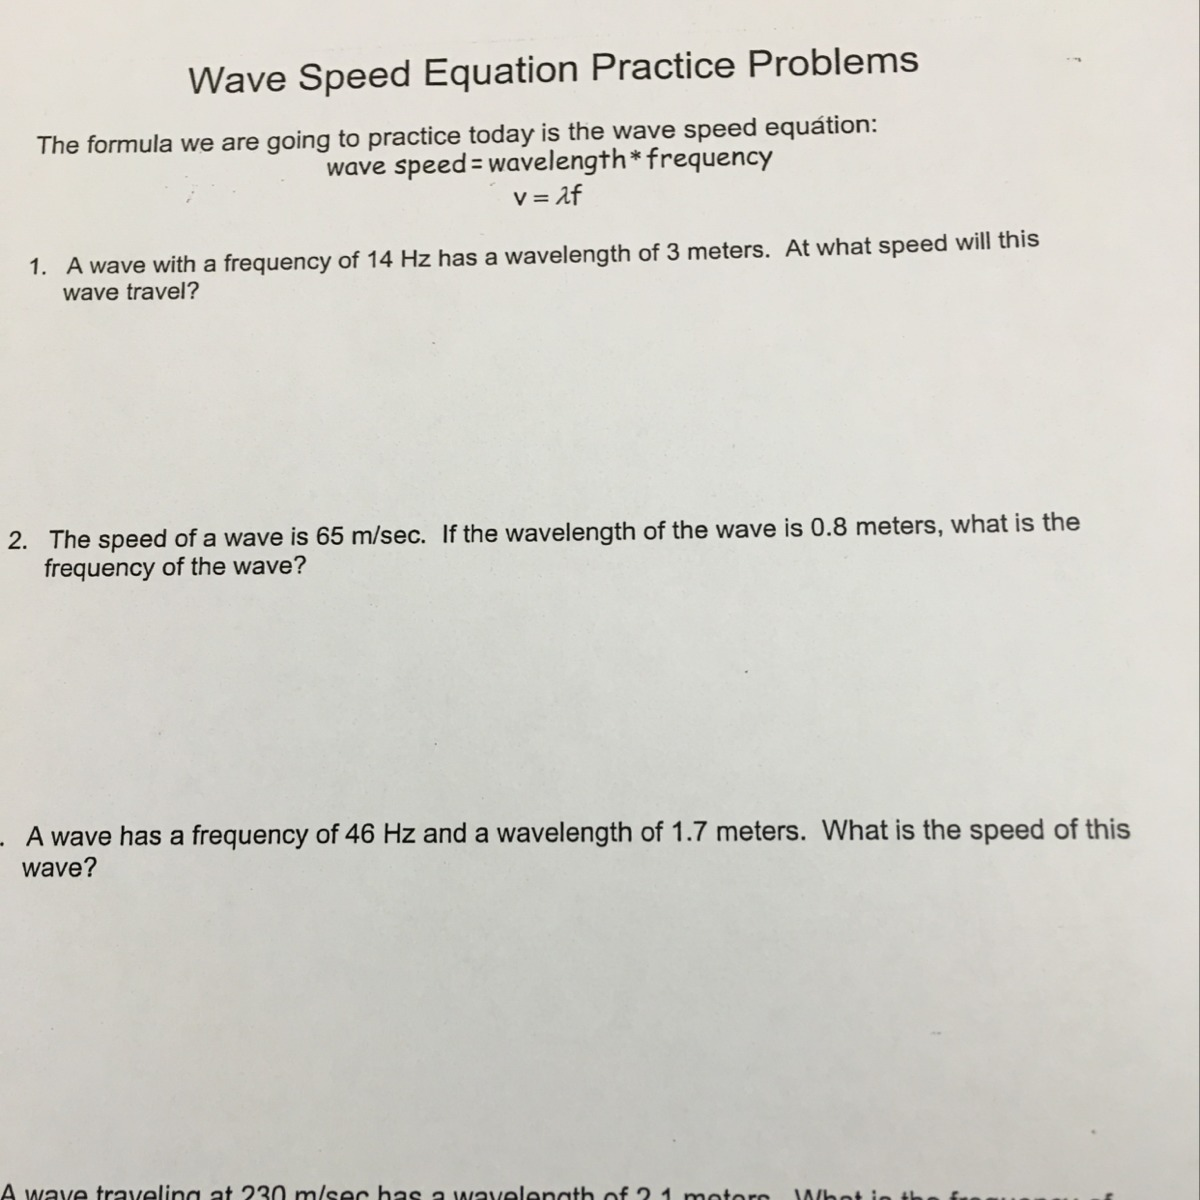 A Wave With A Frequency Of 14 Hz Has A Wavelength Of 3